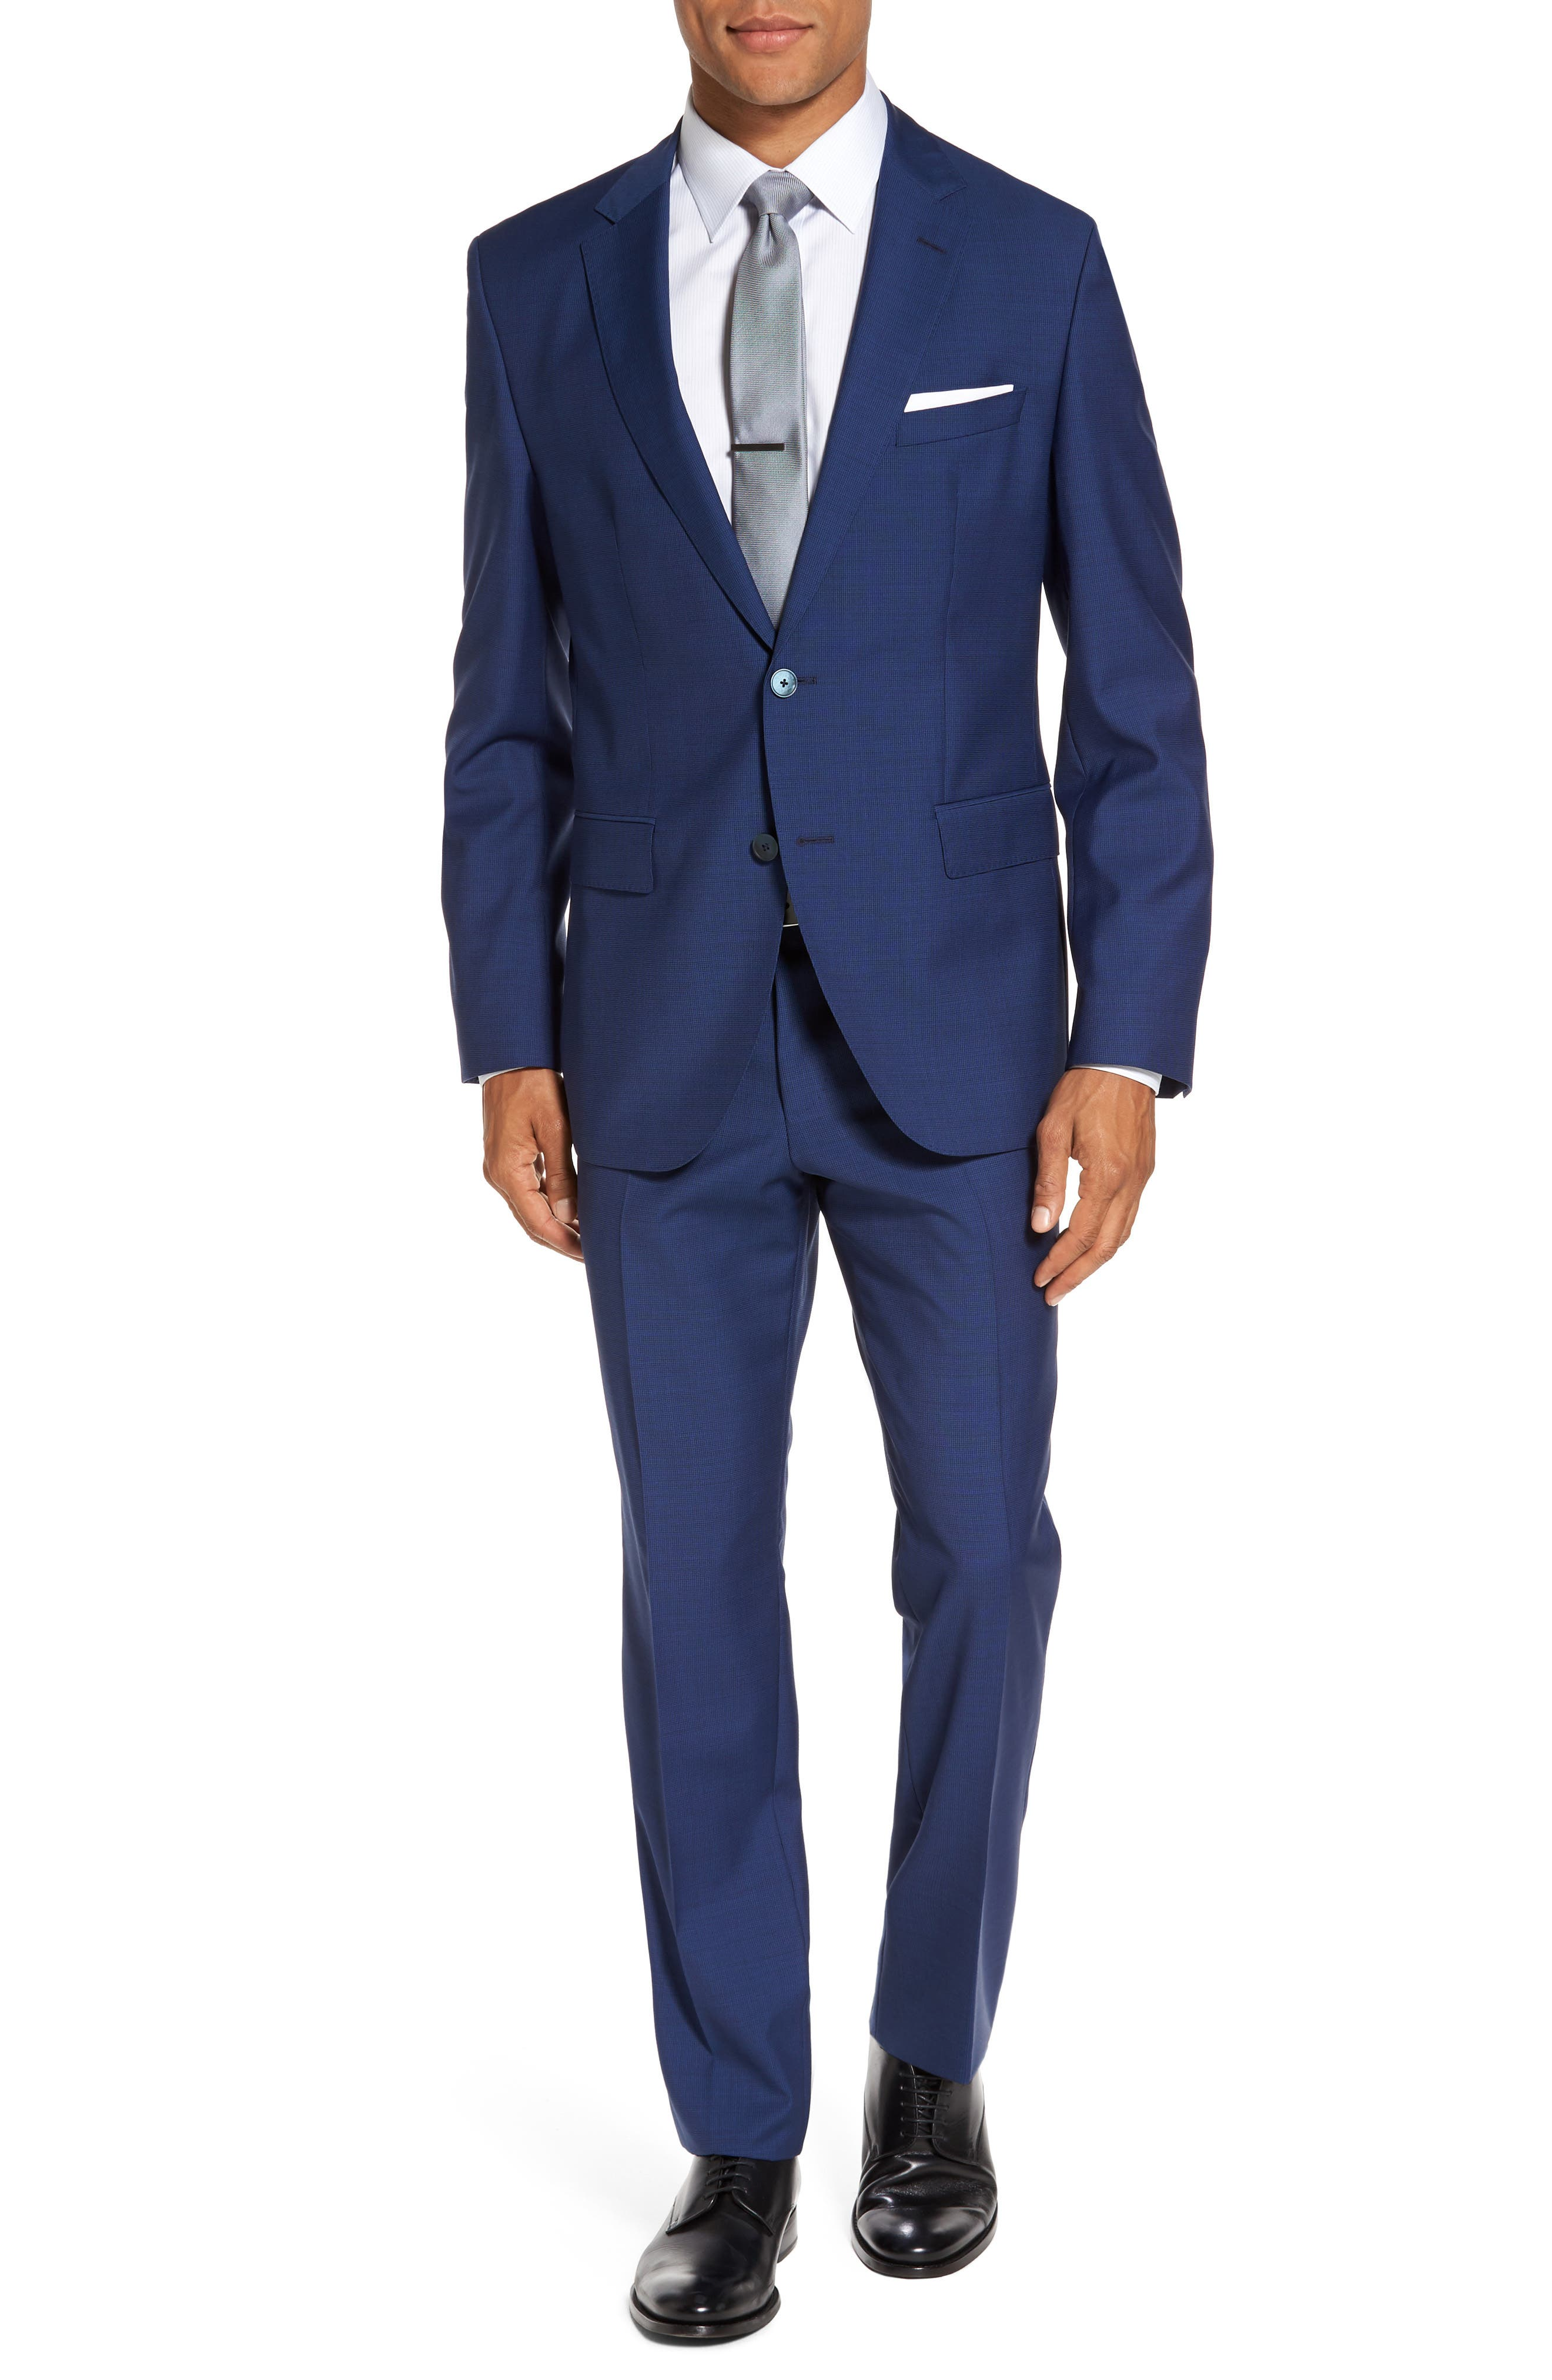 Alternate Image 1 Selected - BOSS Trim Fit Solid Wool Suit